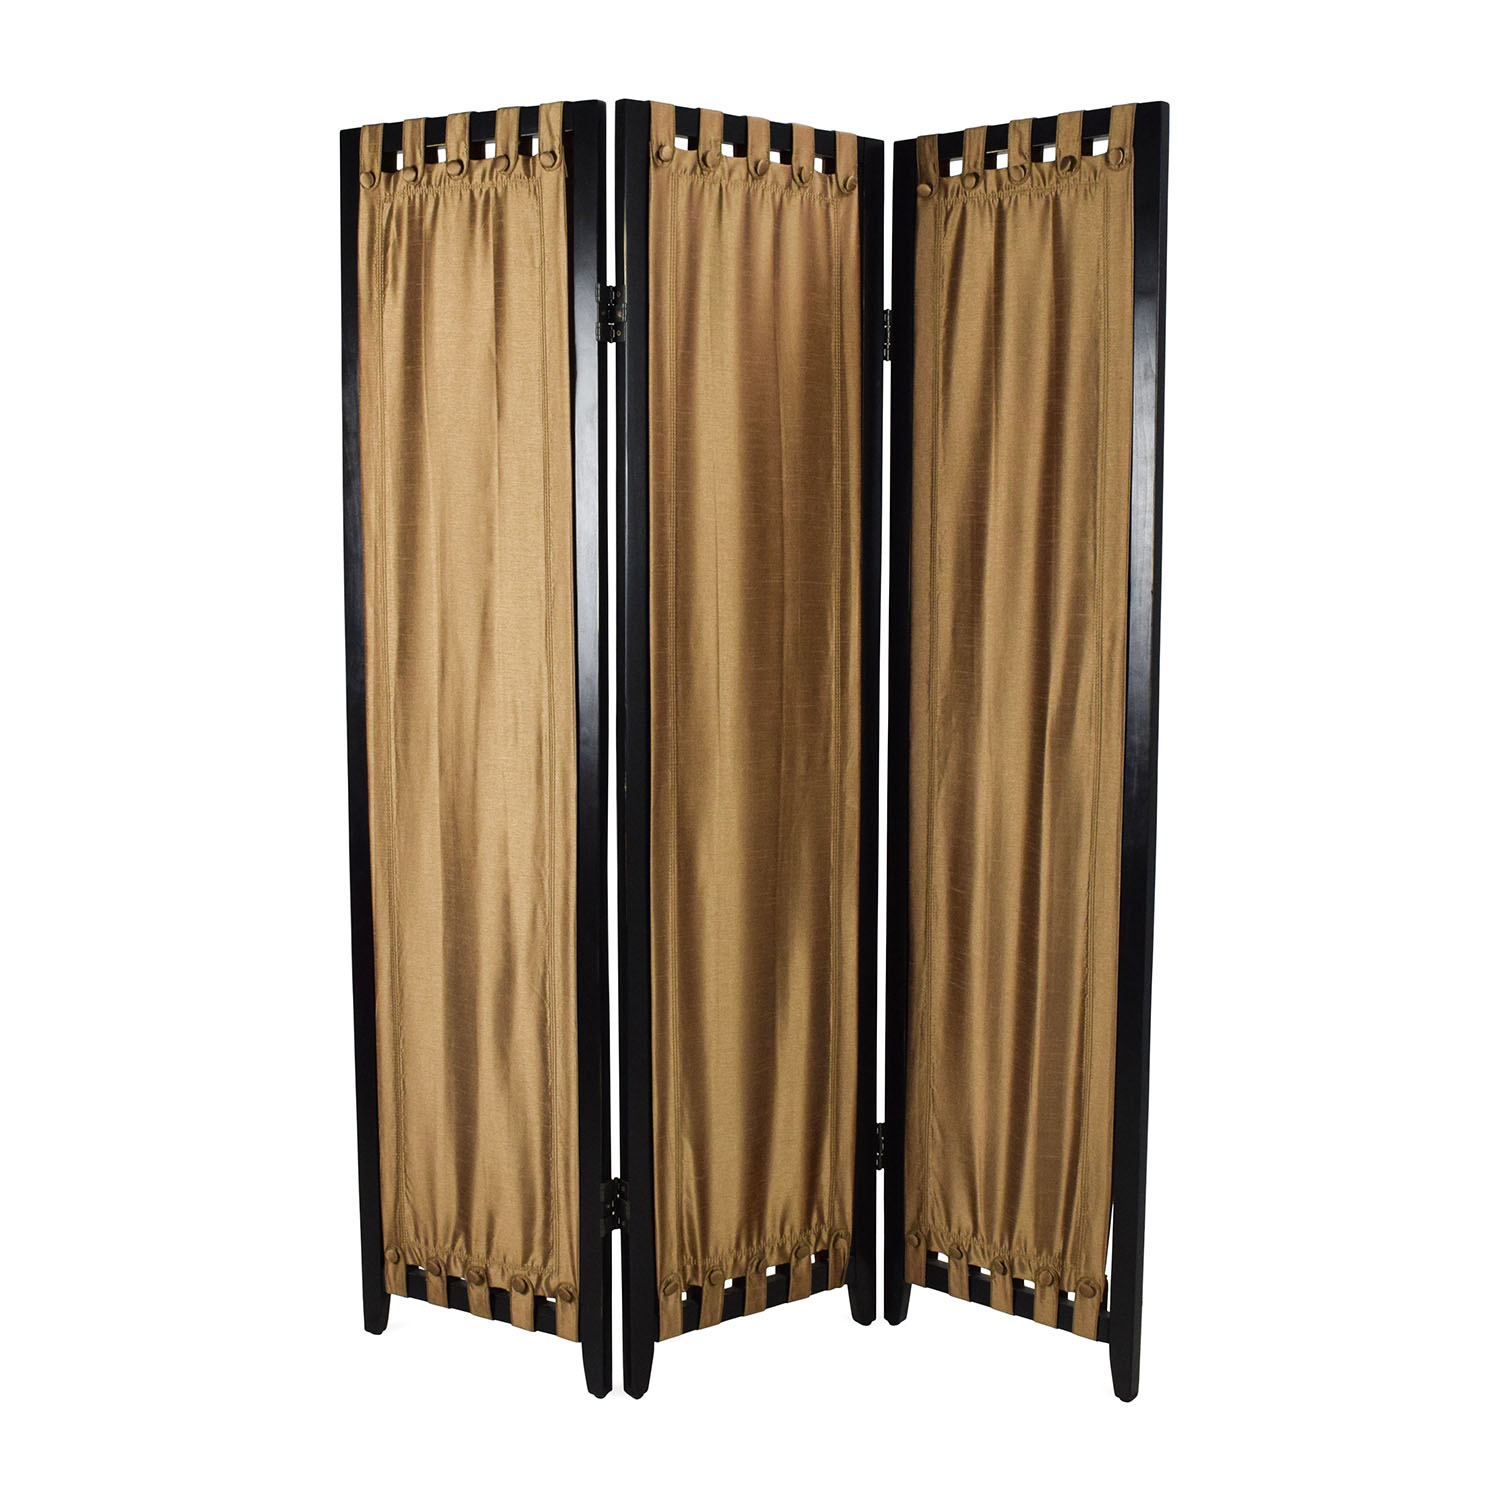 Pier 1 Imports Pier 1 Tabique Gold Room Divider second hand